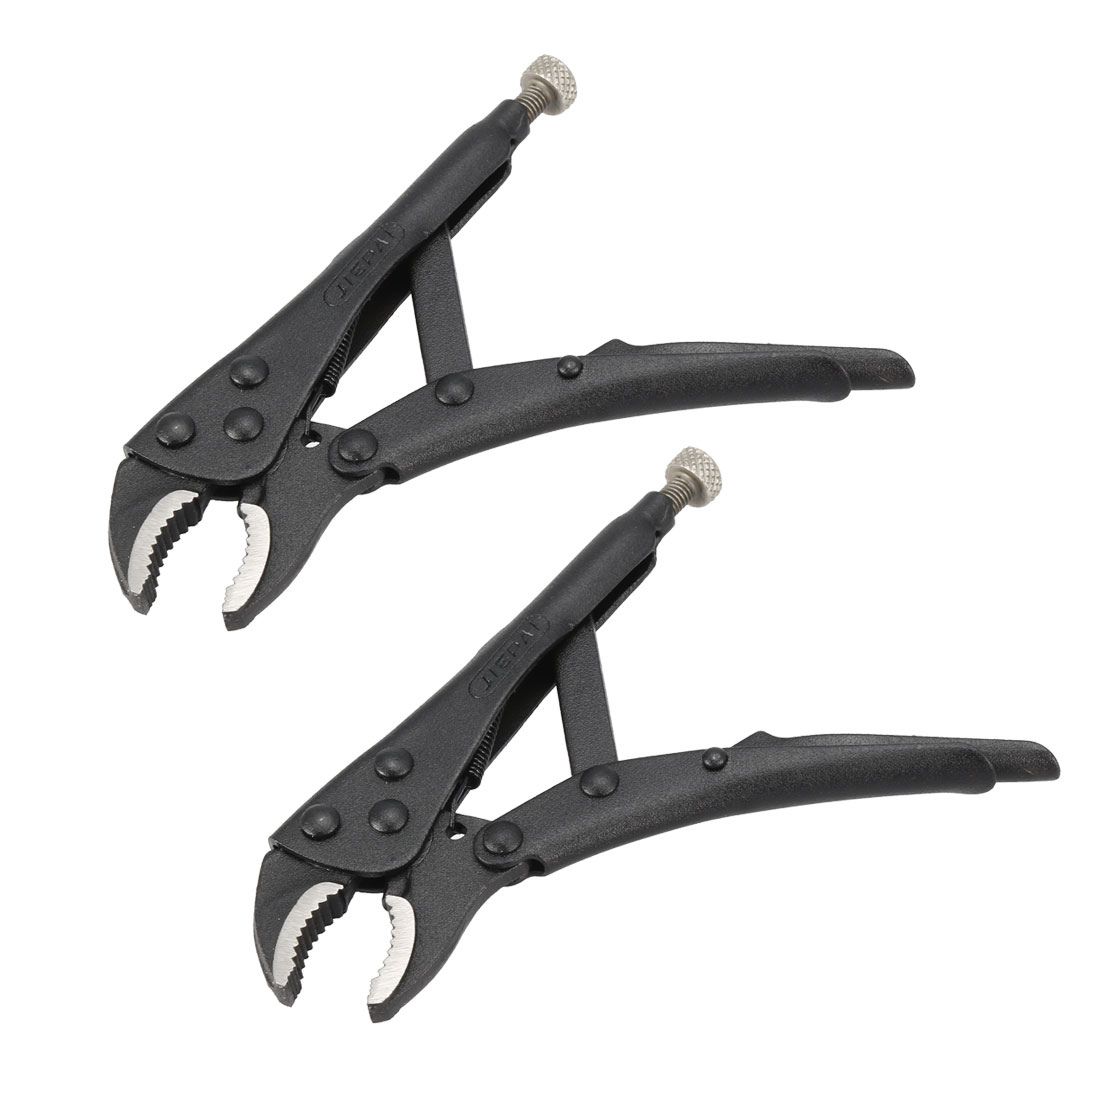 Curved Jaw Locking Pliers High Carbon Steel 5-inch Adjustable Pliers Black 2Pcs